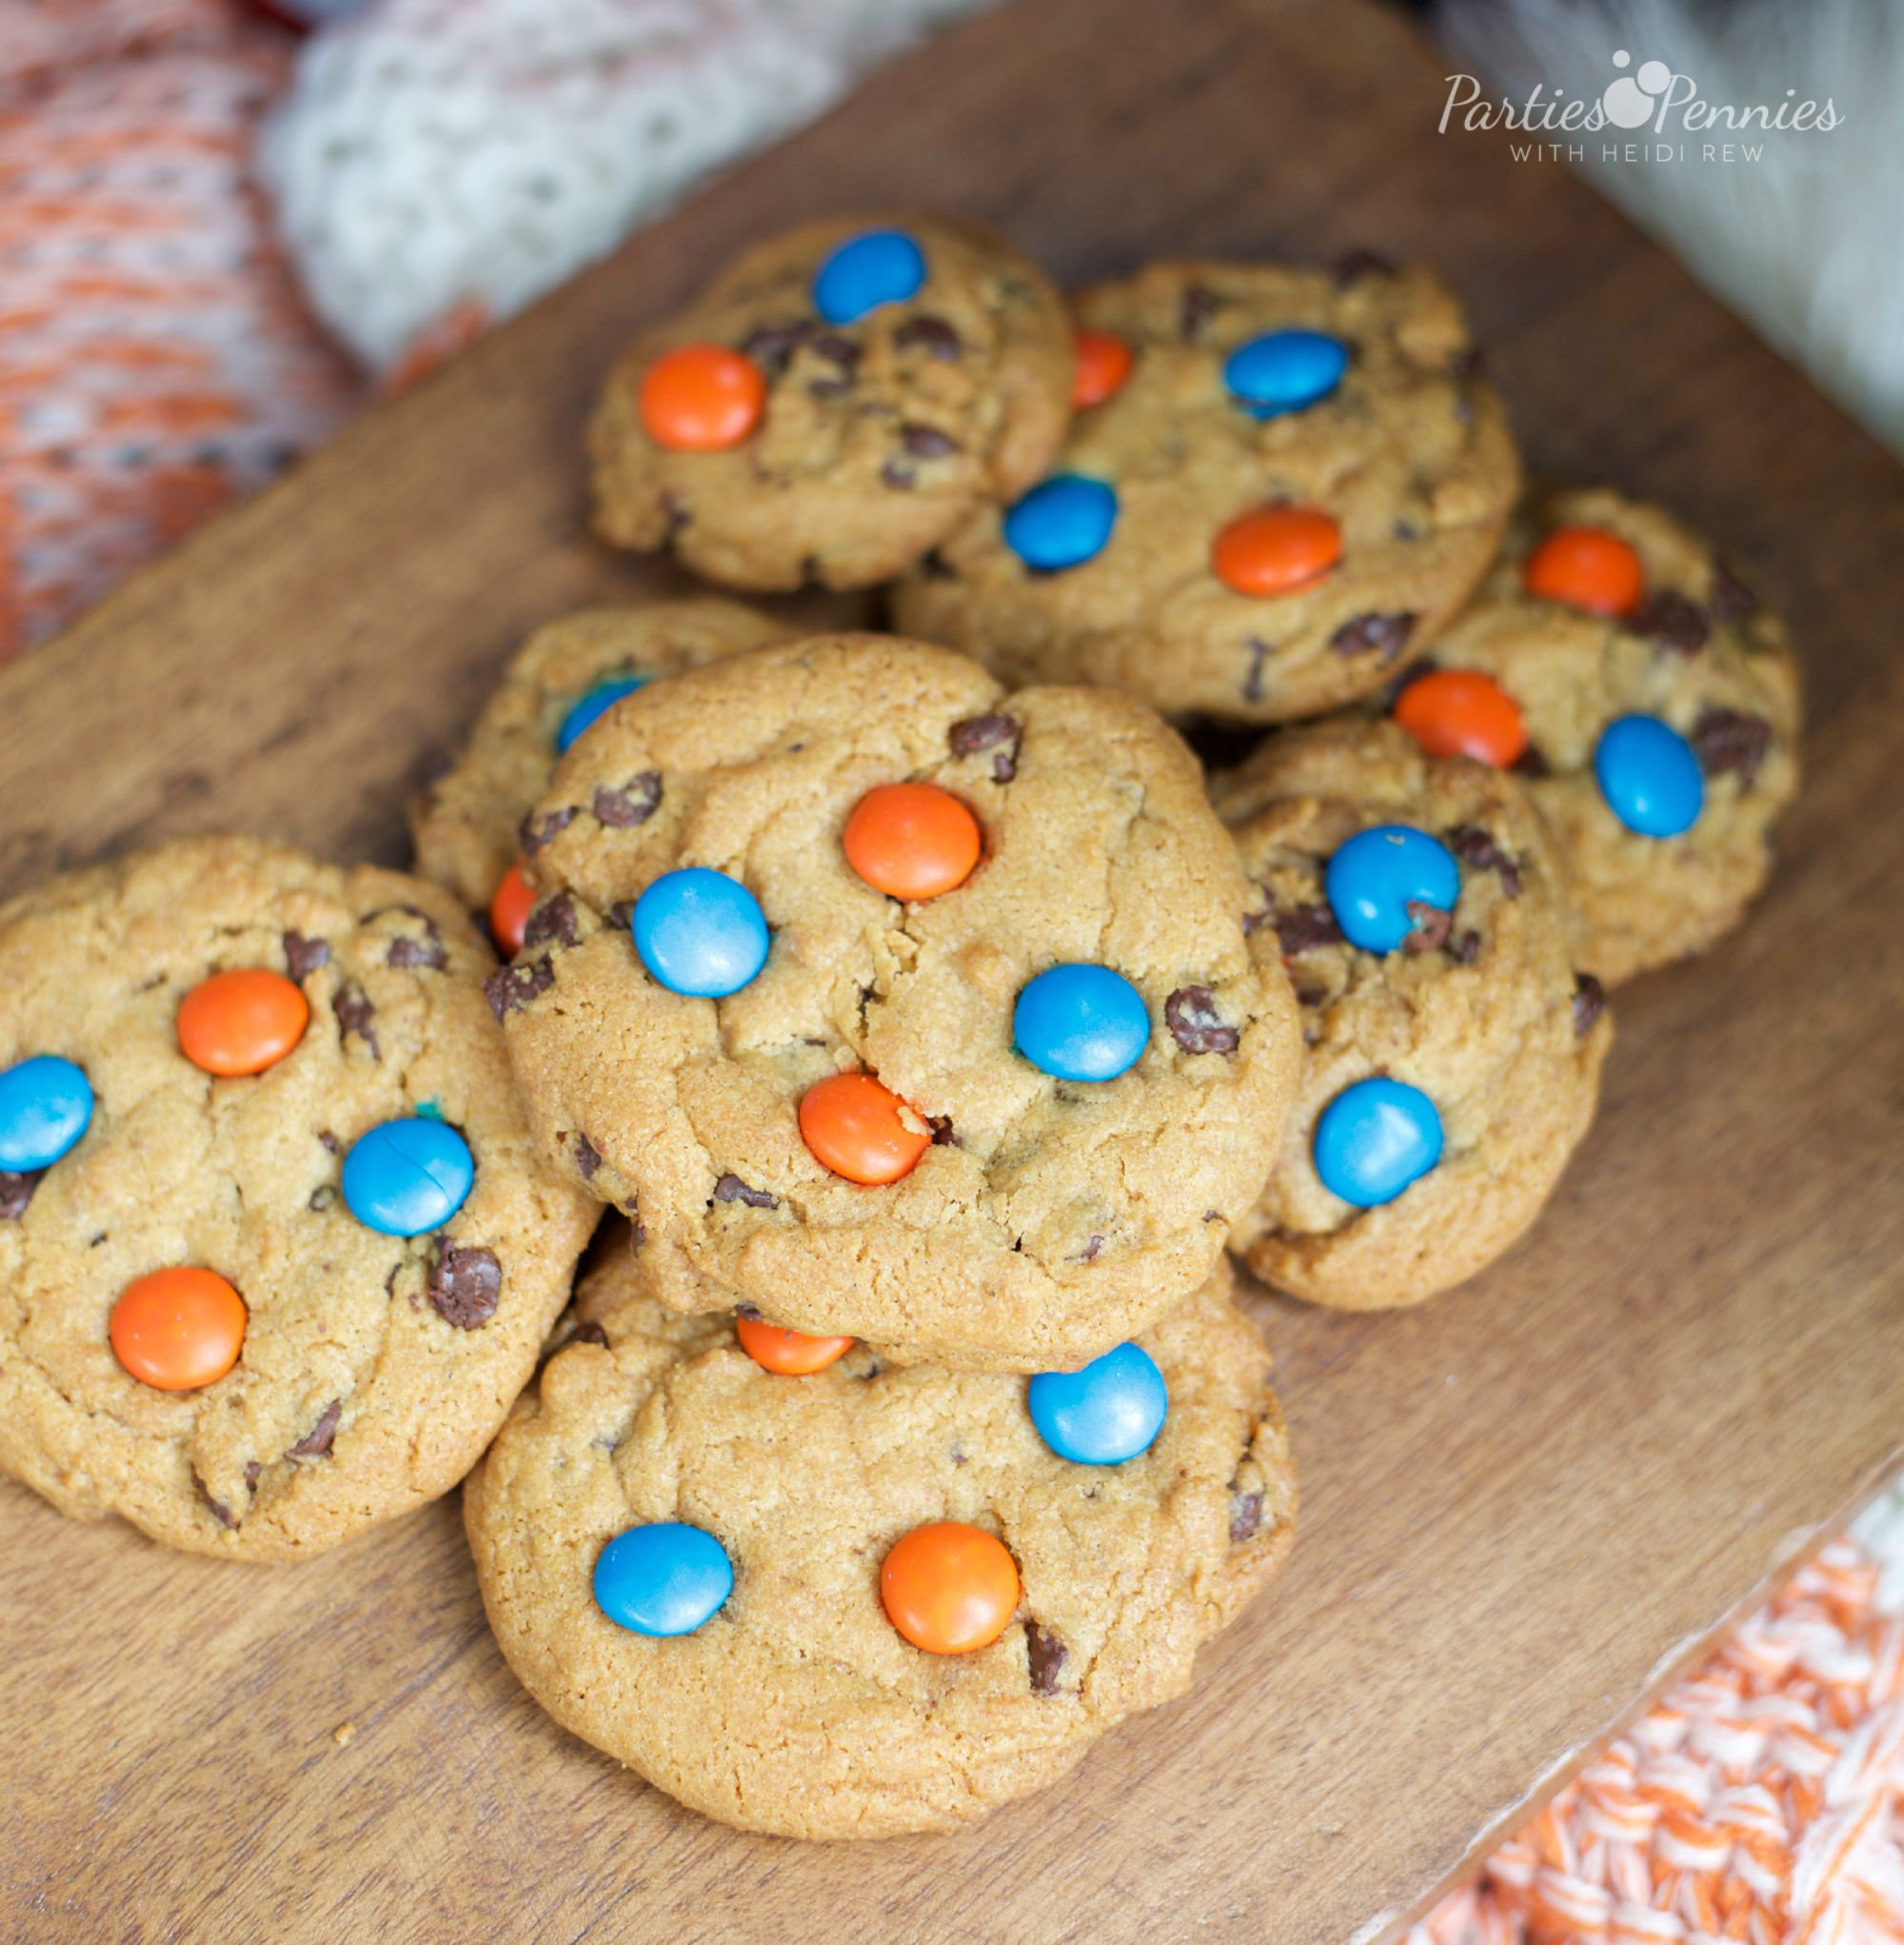 Coca-Cola Fall Football Sam's Club | How to Throw a Tailgate Party | School Color Cookies | PartiesforPennies.com | #tailgate #floridagators #universityofflorida #shareyourspirit